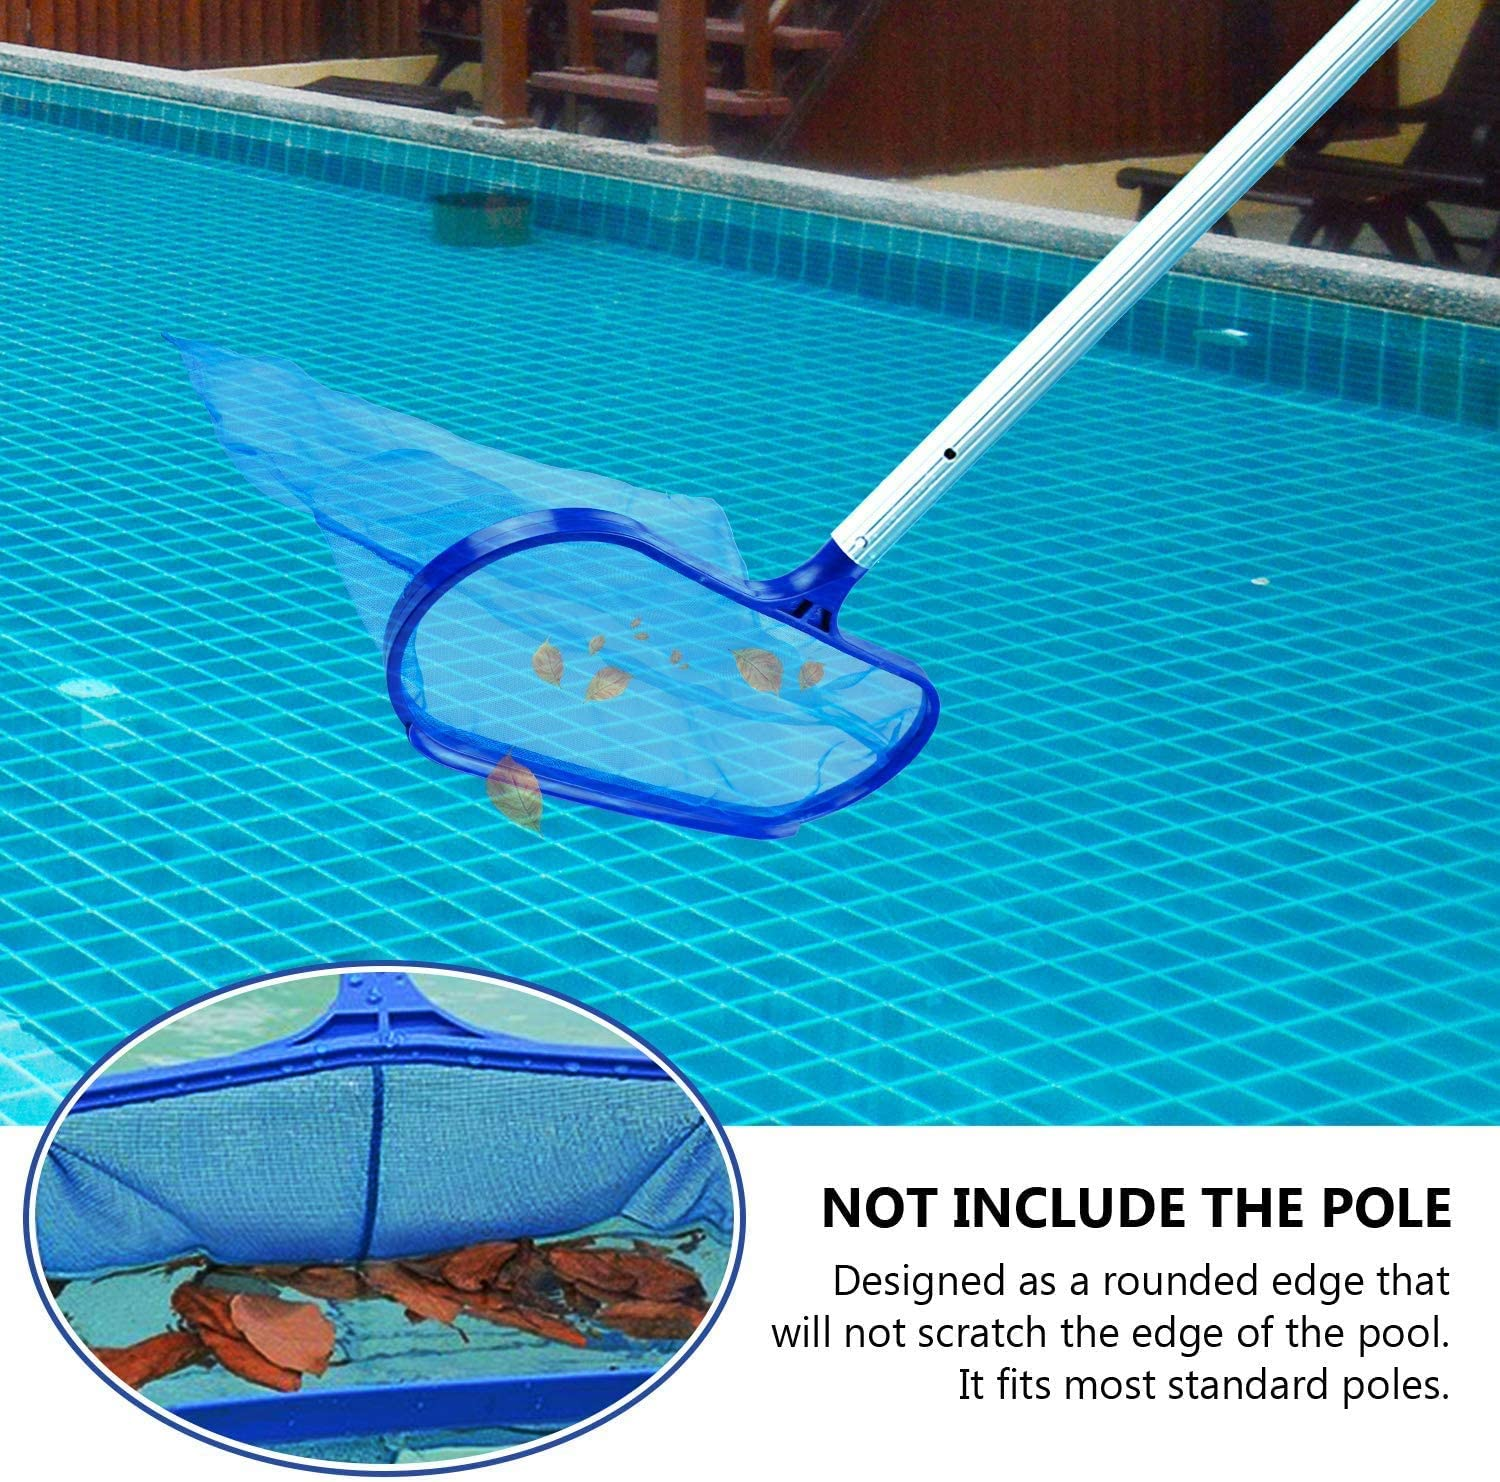 Fine Mesh Net for Cleaning Swimming Pool Heavy Duty Skimming Pool Net without pole Garden Pond ECHG Professional Pool Leaf Skimmer Hot Tub and Spa